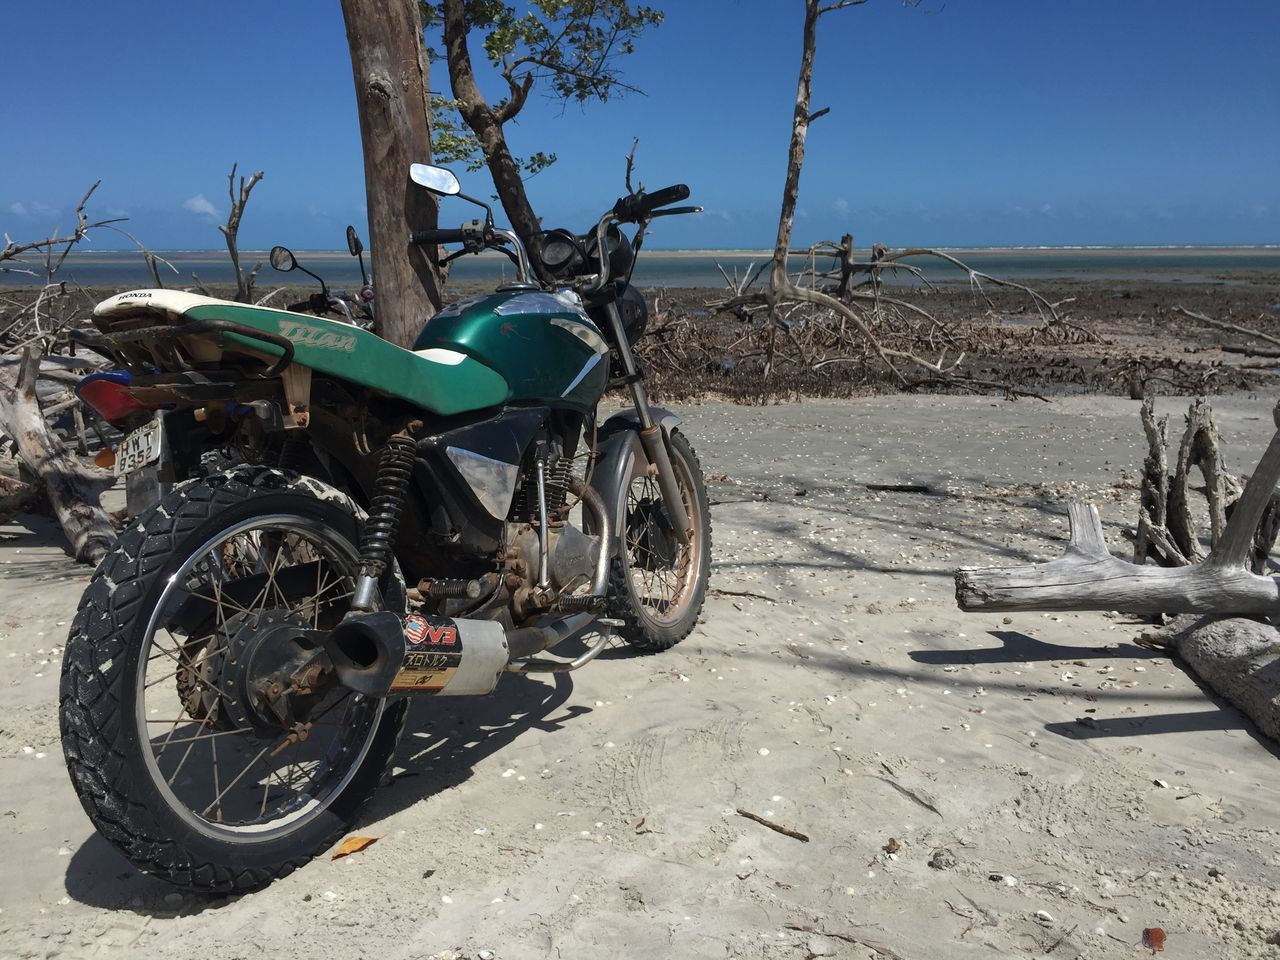 transportation, mode of transport, land vehicle, stationary, day, no people, outdoors, bicycle, sunlight, blue, sky, beach, clear sky, nature